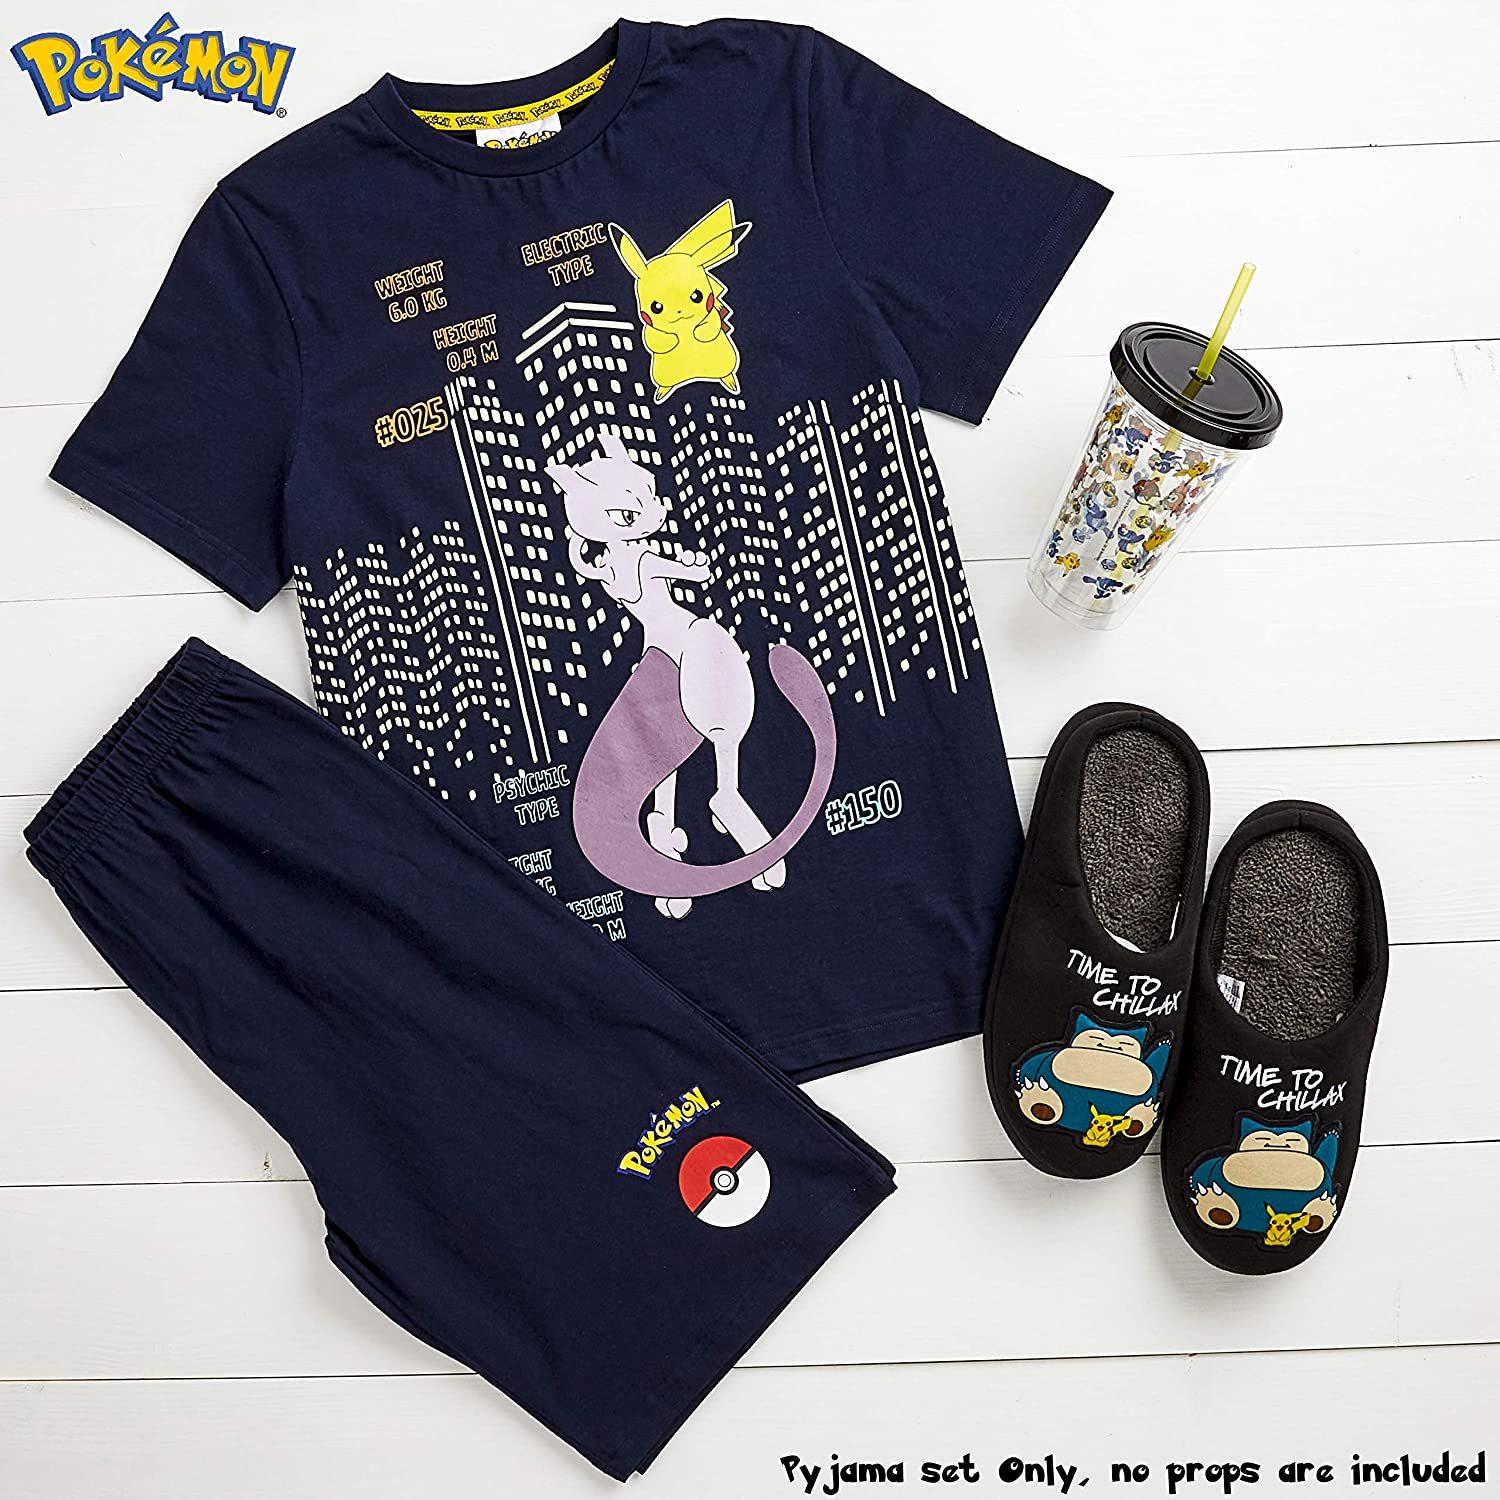 Kids Nightwear 4 to 14 Years Girls and Boys Pjs with Charizard Pikachu T-Shirt and Shorts Pyjamas Set Psyduck Mewtwo Teenagers Pokemon Boys Pyjamas Gifts for Kids